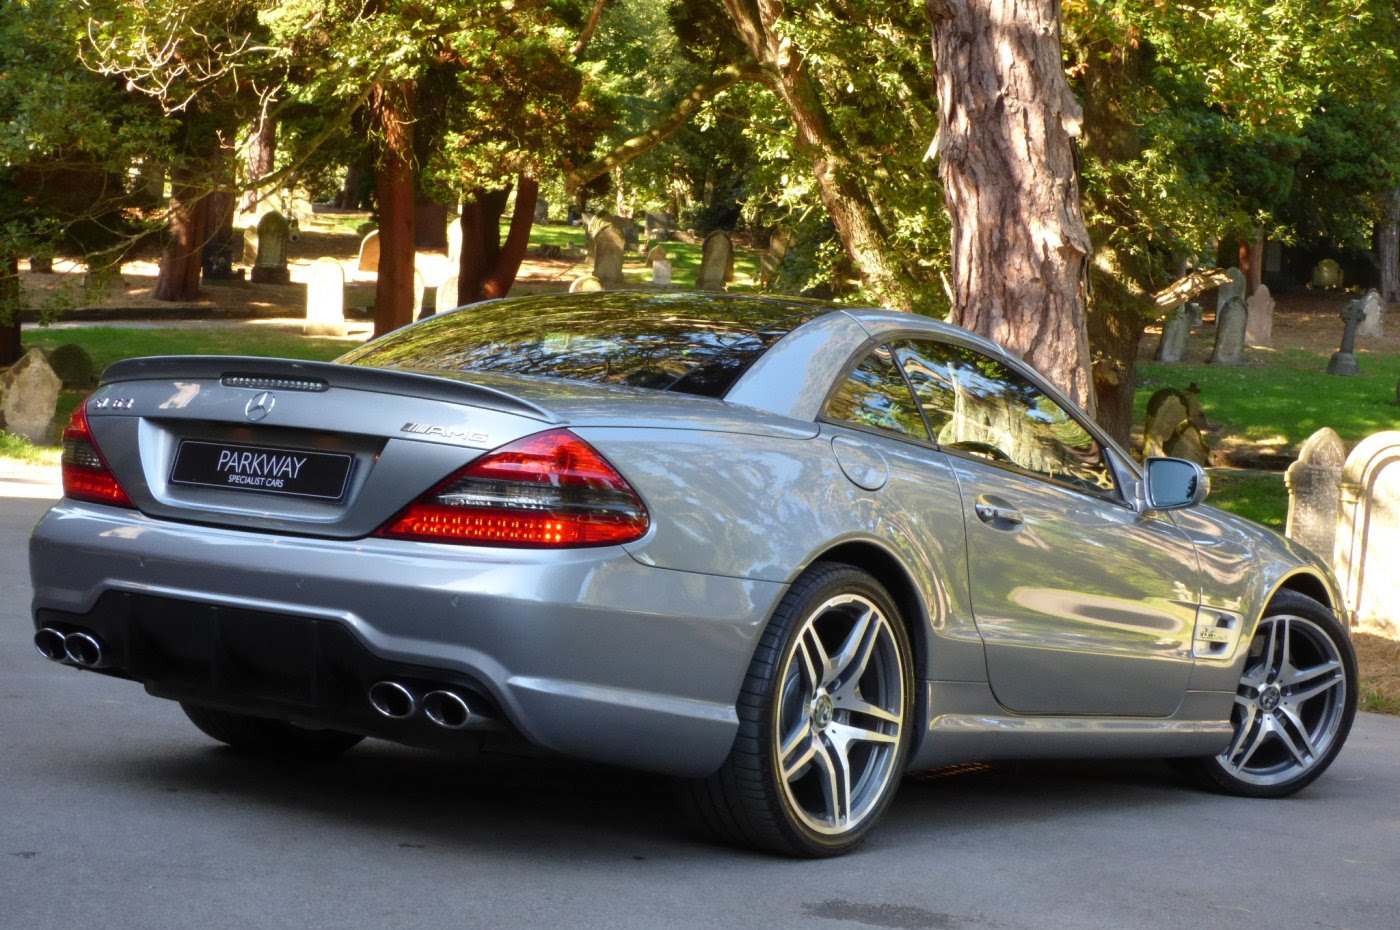 MERCEDES BENZ SL63 AMG V8 CONVERTIBLE